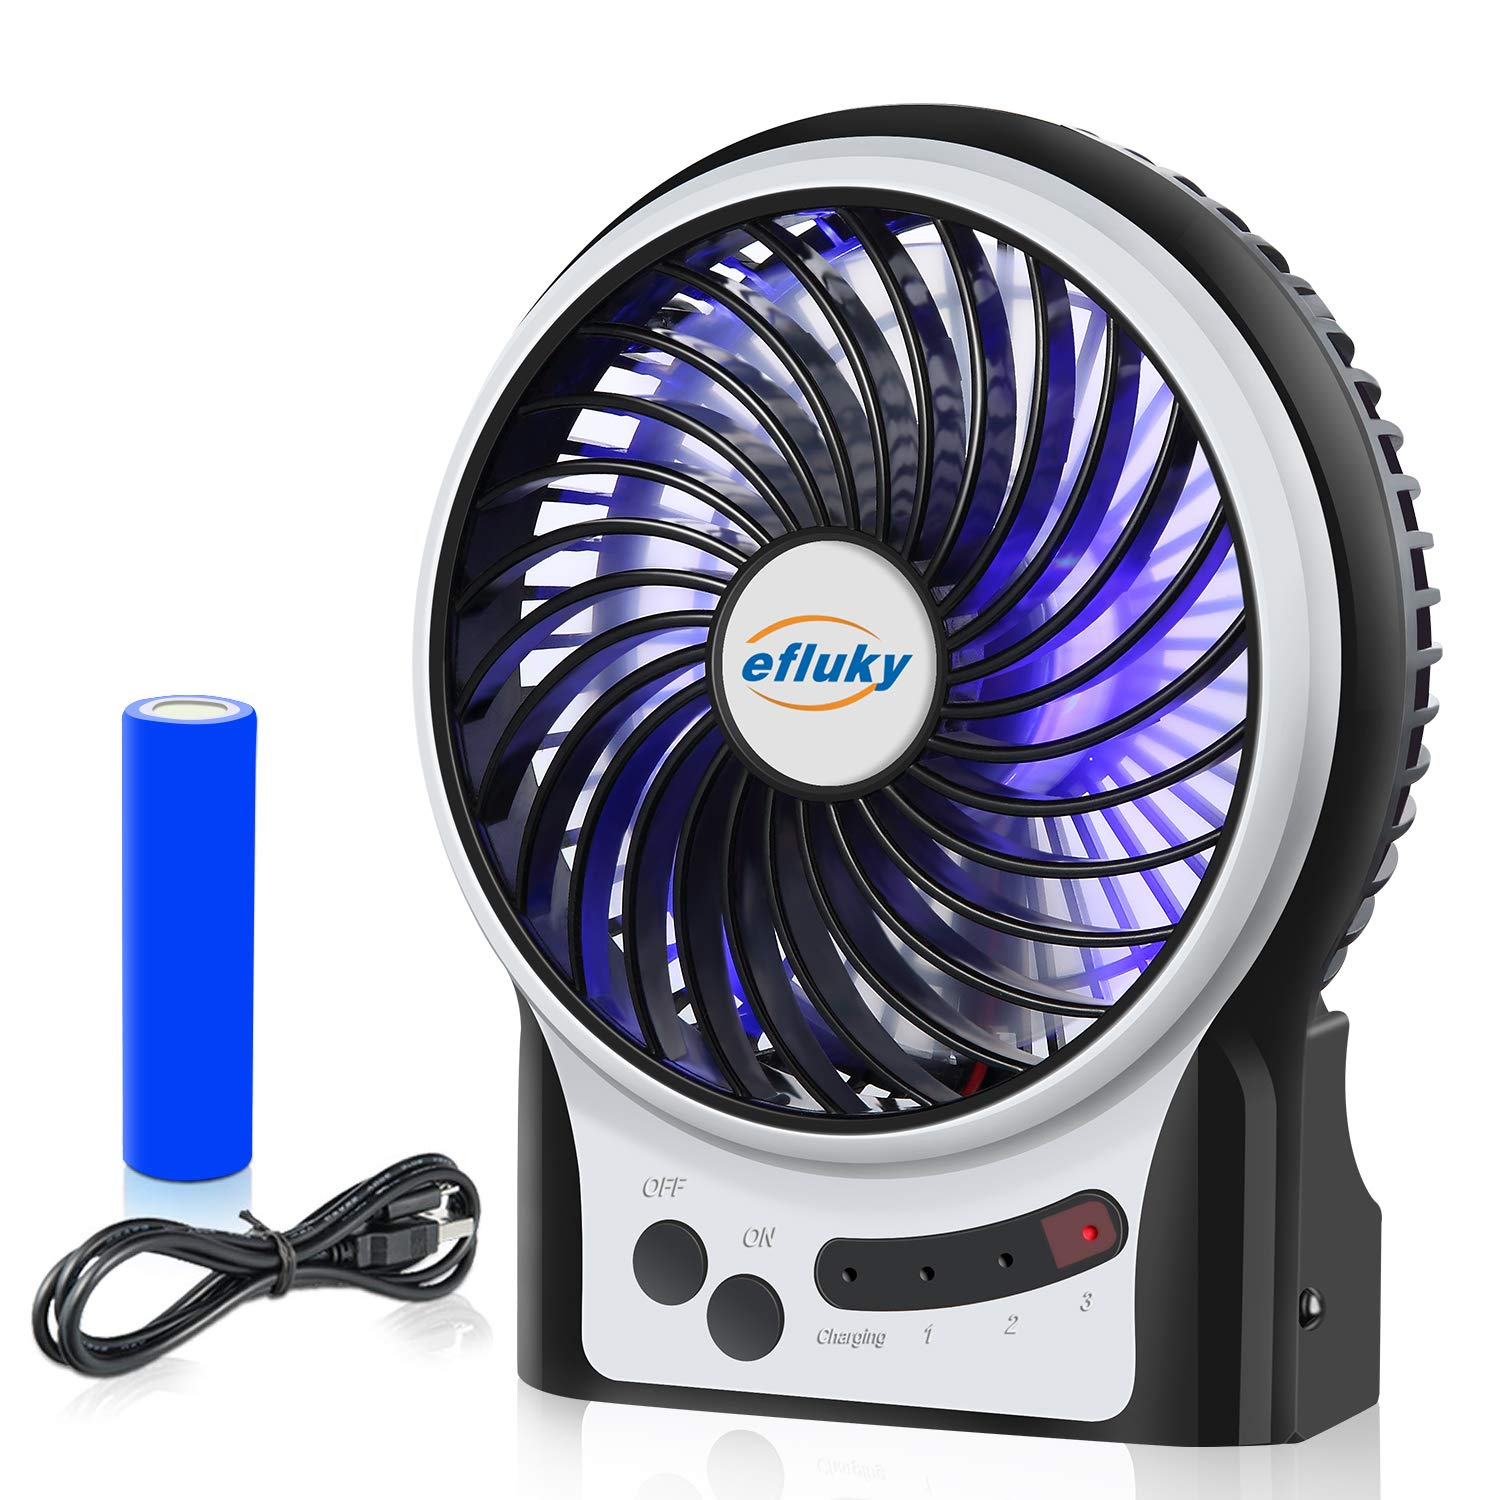 efluky 3 Speeds Mini Desk Fan, Rechargeable Battery Operated Fan with LED Light and 2200mAh Battery, Portable USB Fan Quiet for Home, Office, Travel, Camping, Outdoor, Indoor Fan, 4.9-Inch, Black by efluky